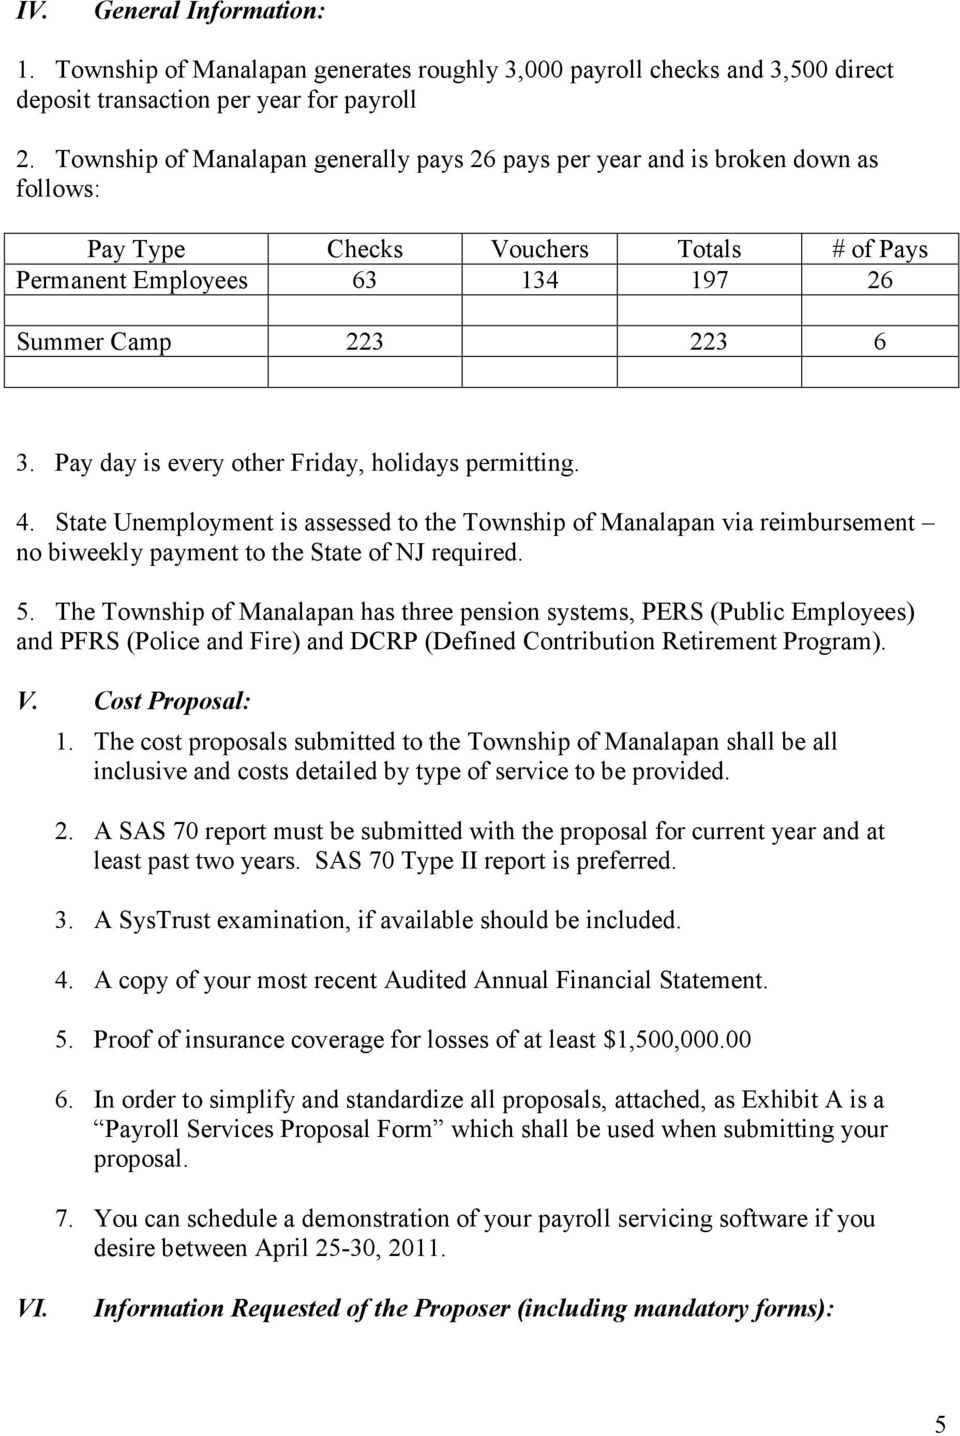 Pay day is every other Friday, holidays permitting. 4. State Unemployment is assessed to the Township of Manalapan via reimbursement no biweekly payment to the State of NJ required. 5.